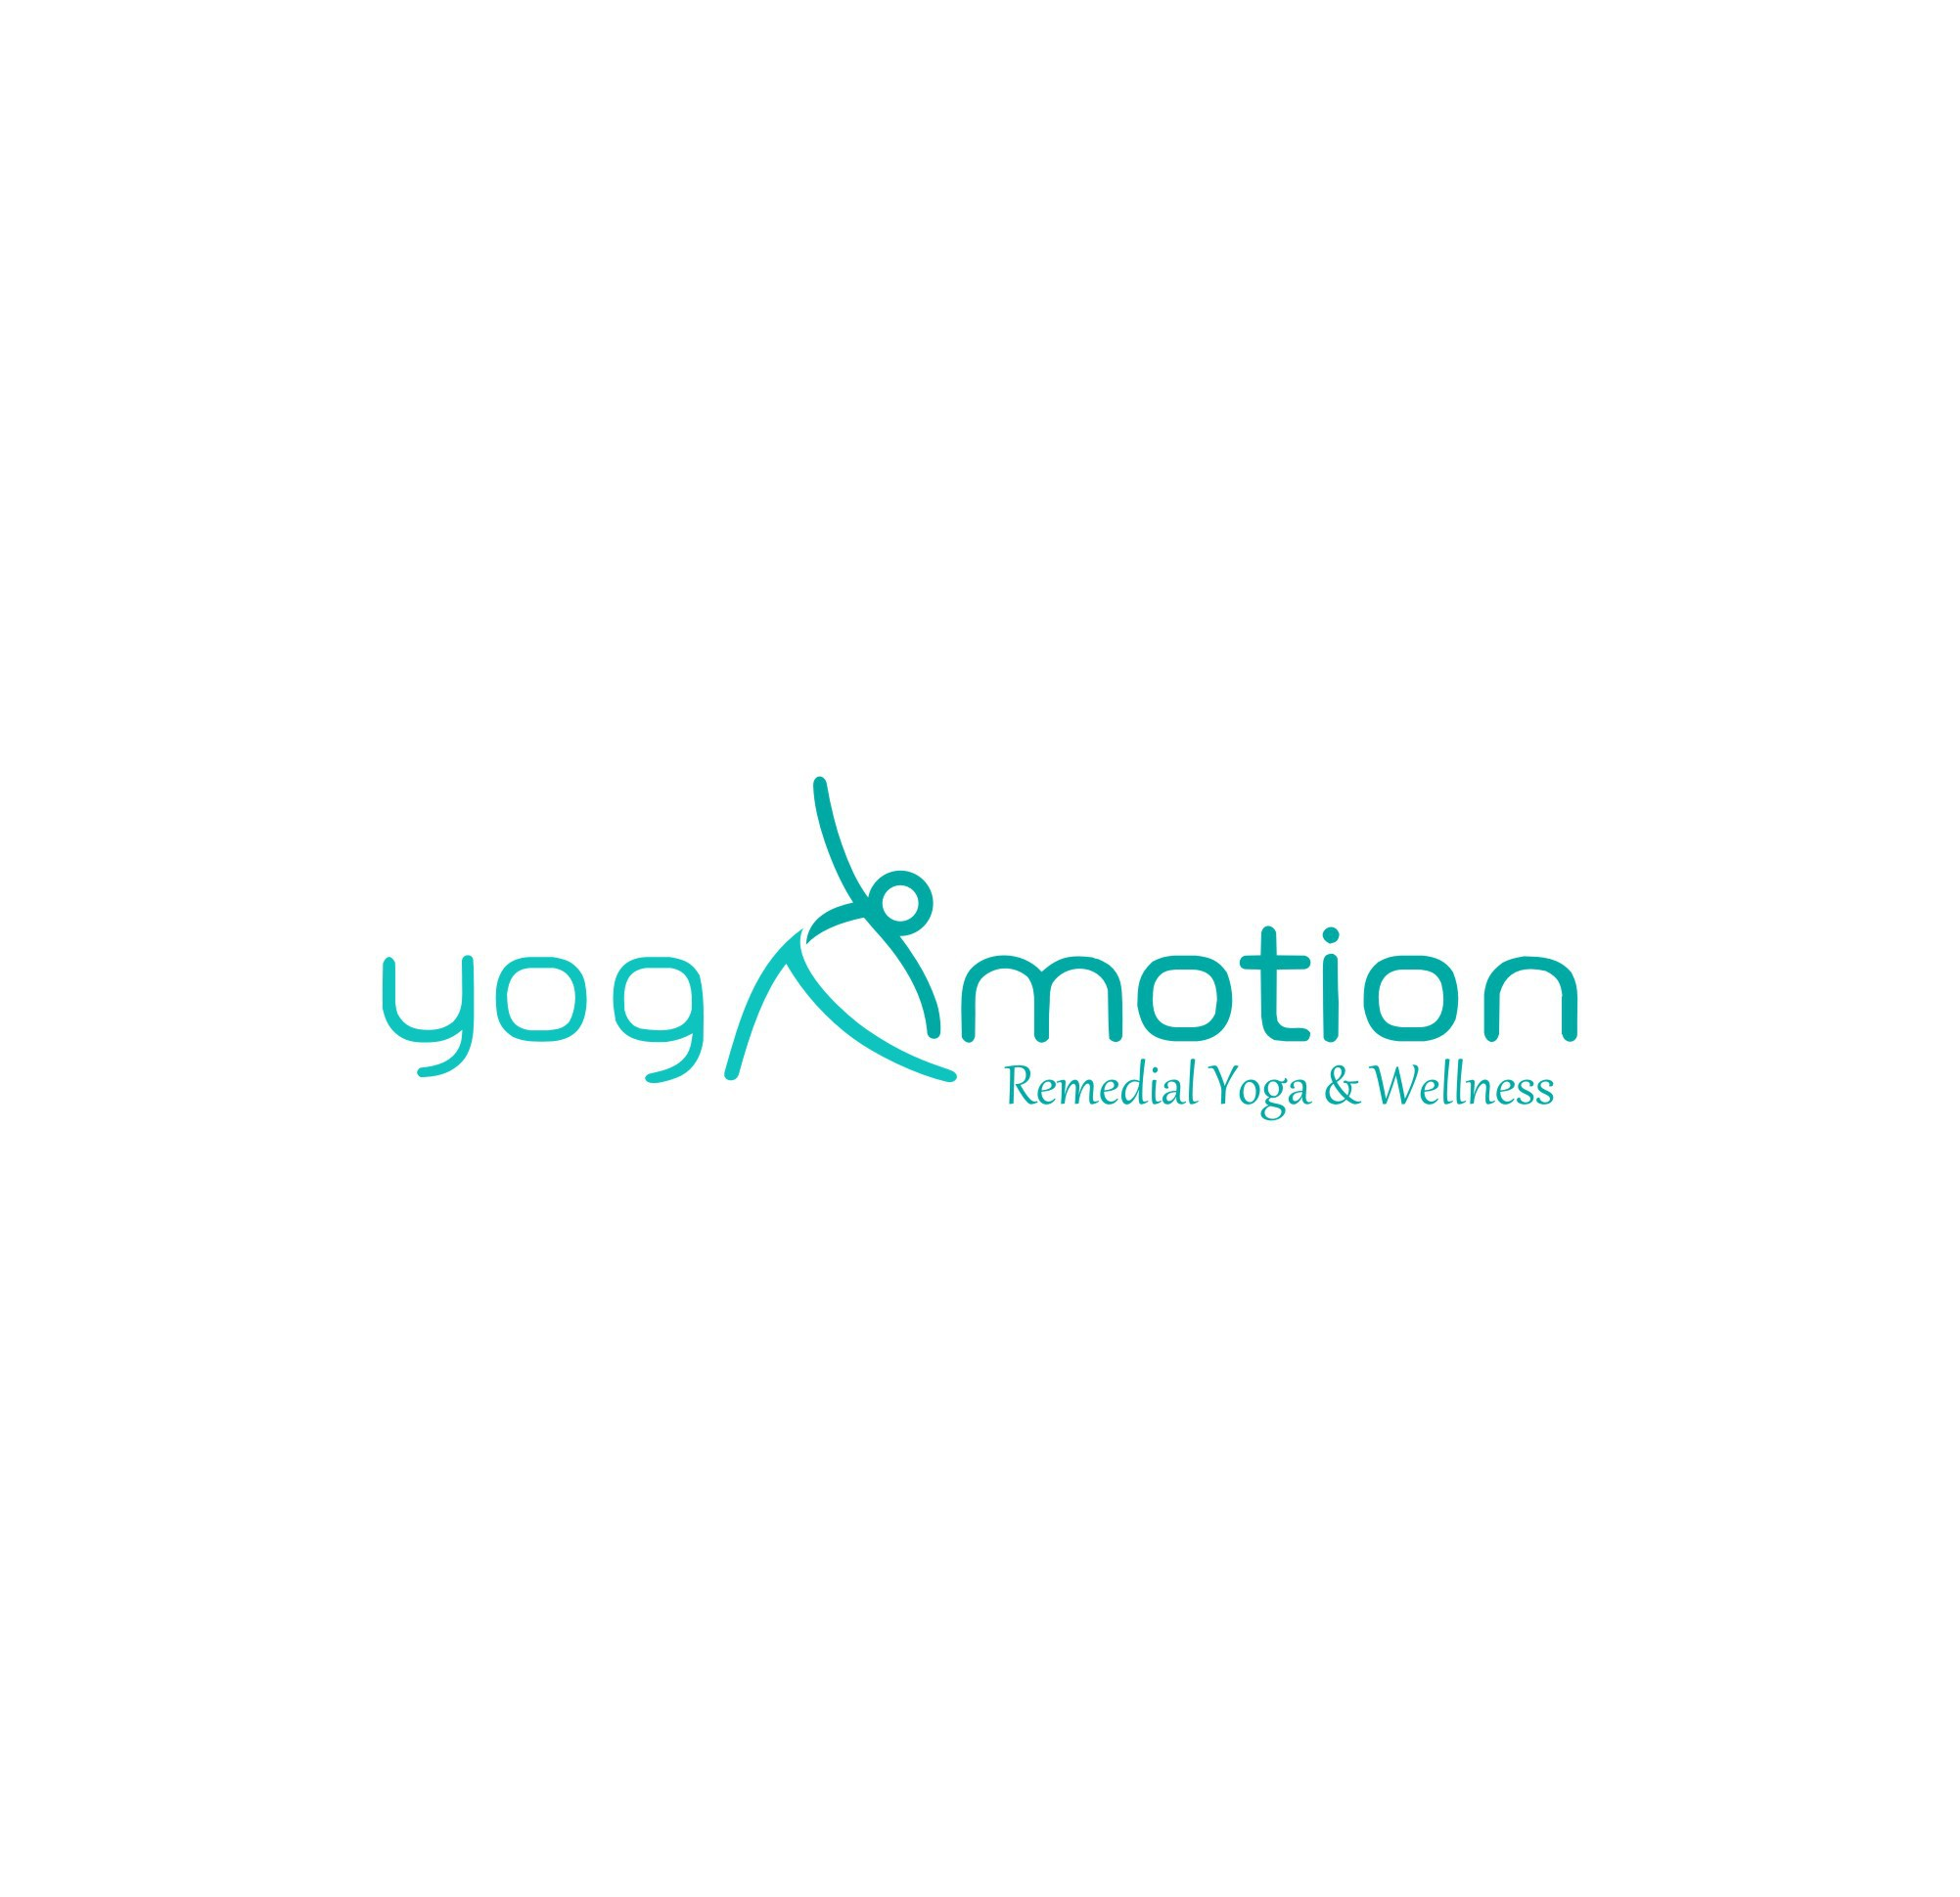 Yogamotion needs a Fresh, Clear & Simple Logo Design that POPS!!